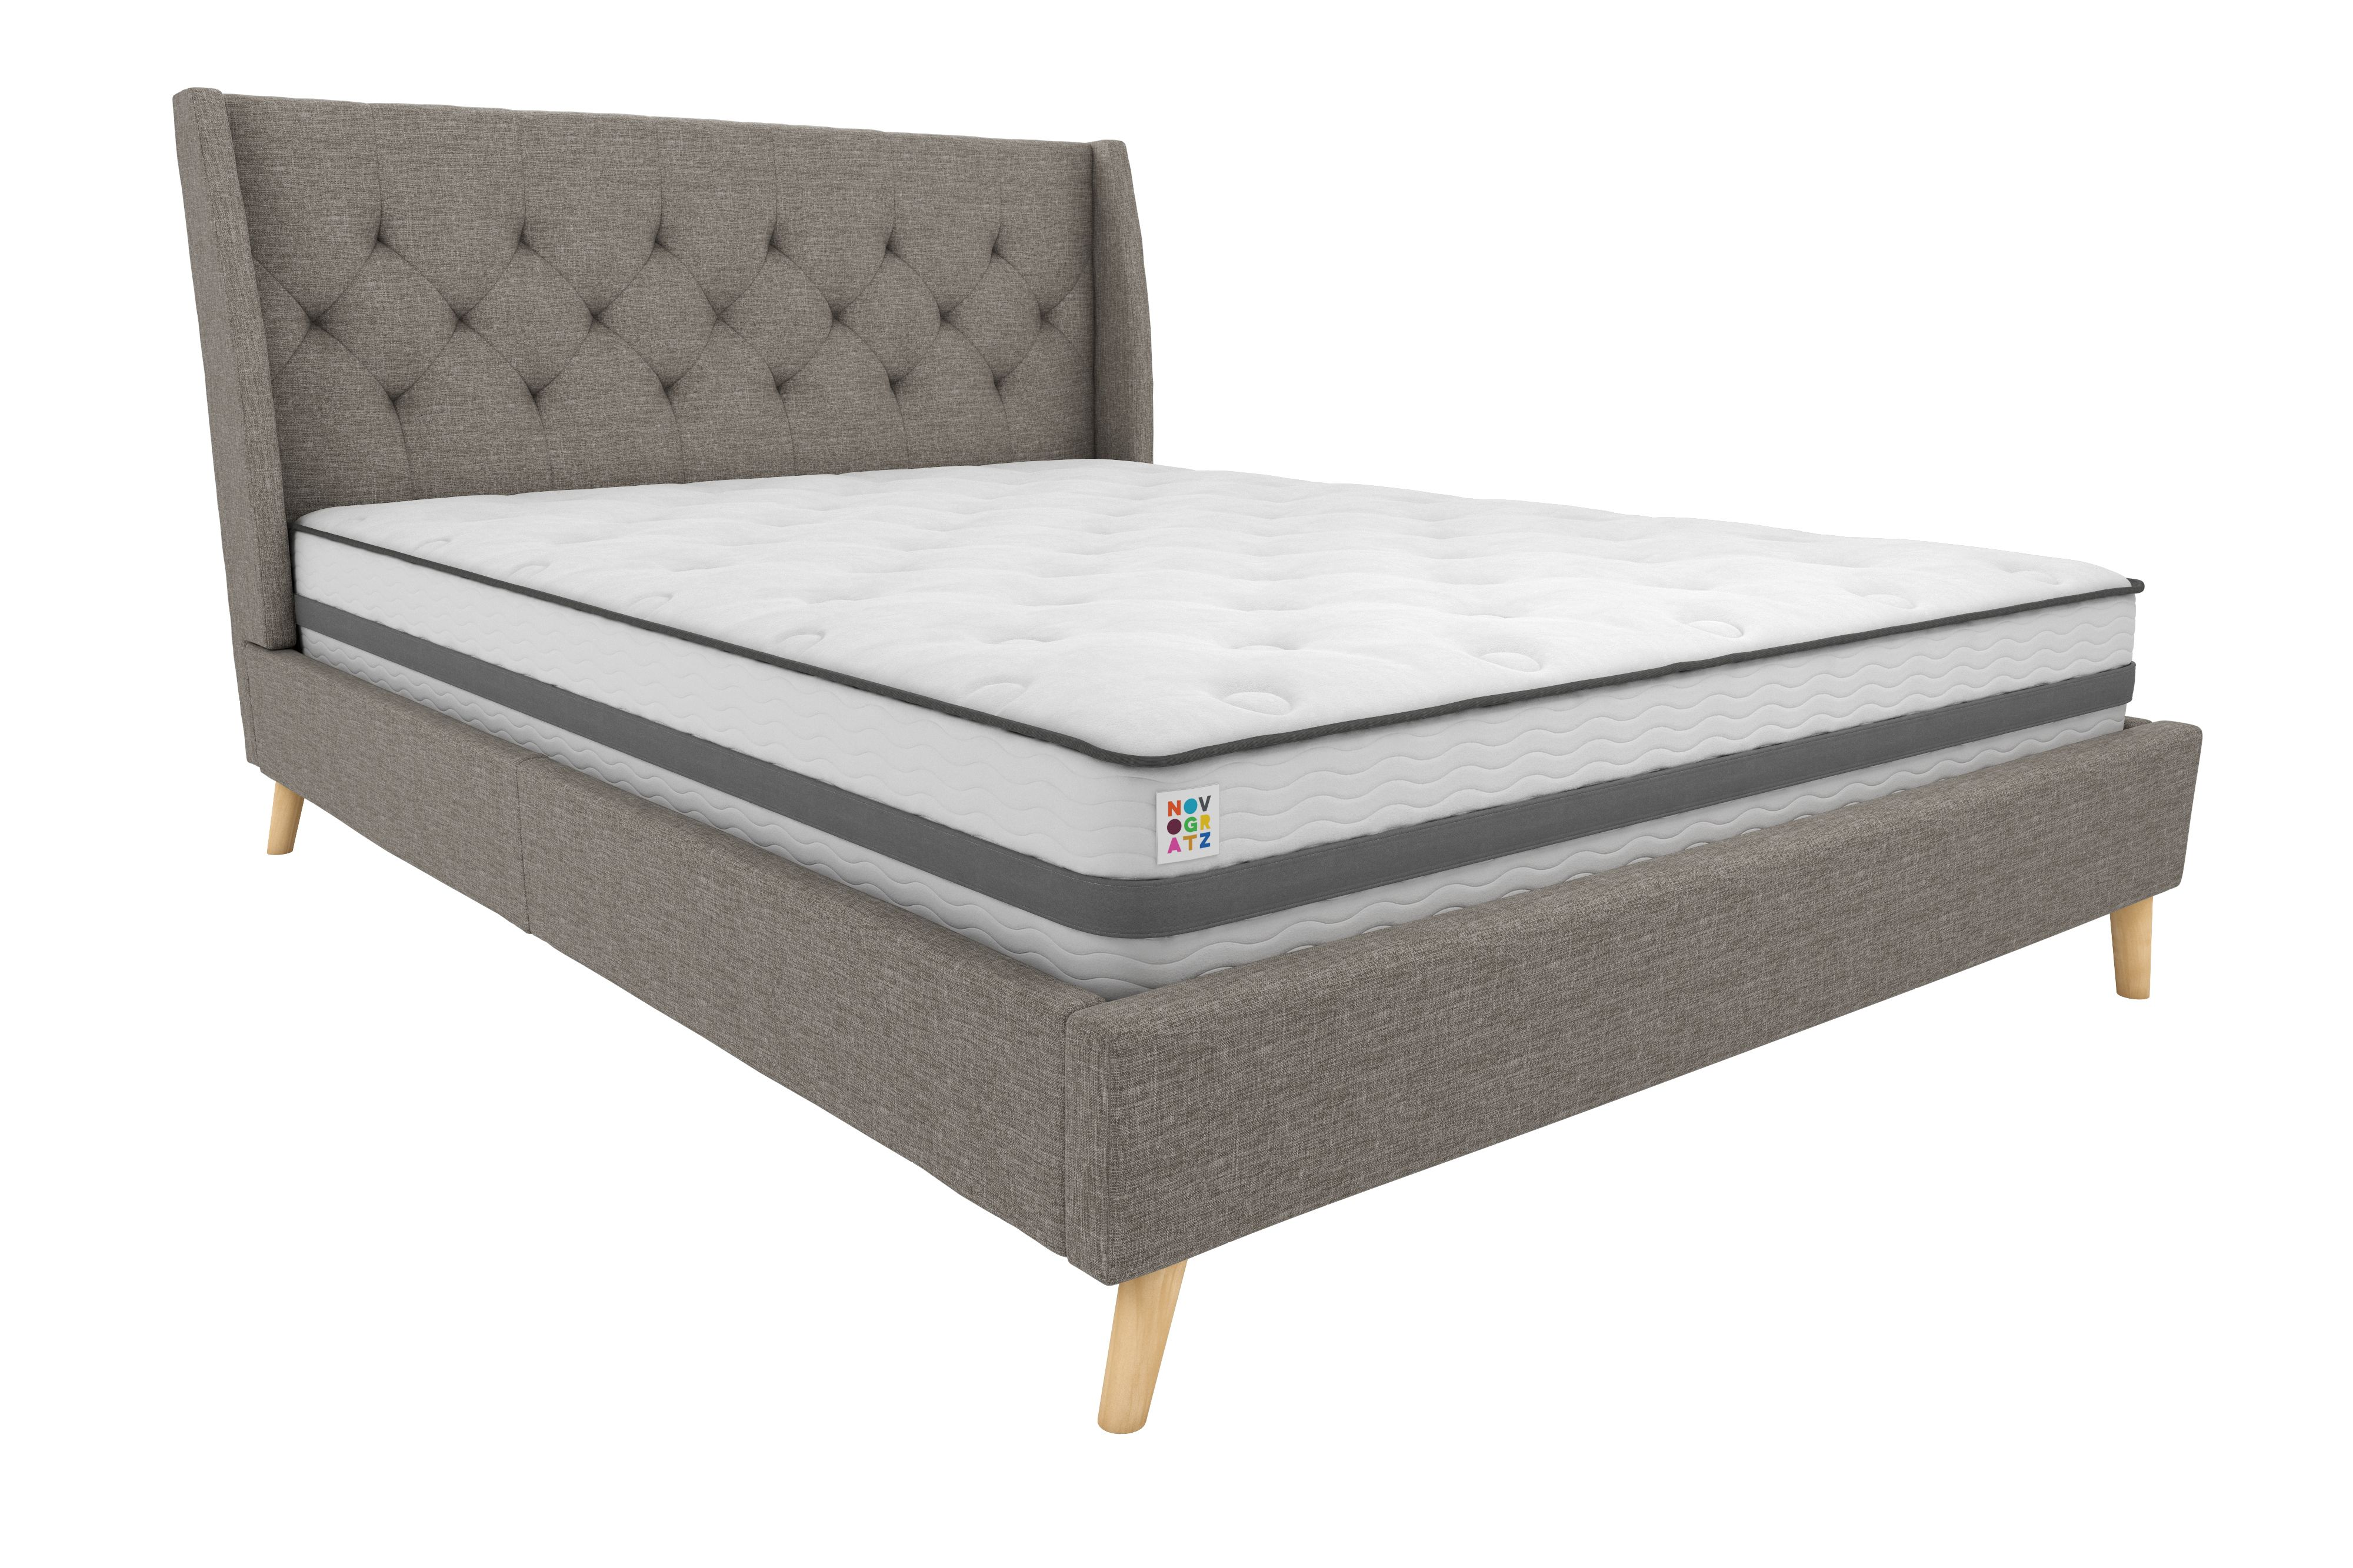 sale mat decorating x bottom bedroom white futon alluring gray amazon snazzy for mesmerizing with vivacious comfortable trends futons to pad colors top mattress replacement pillow cushion